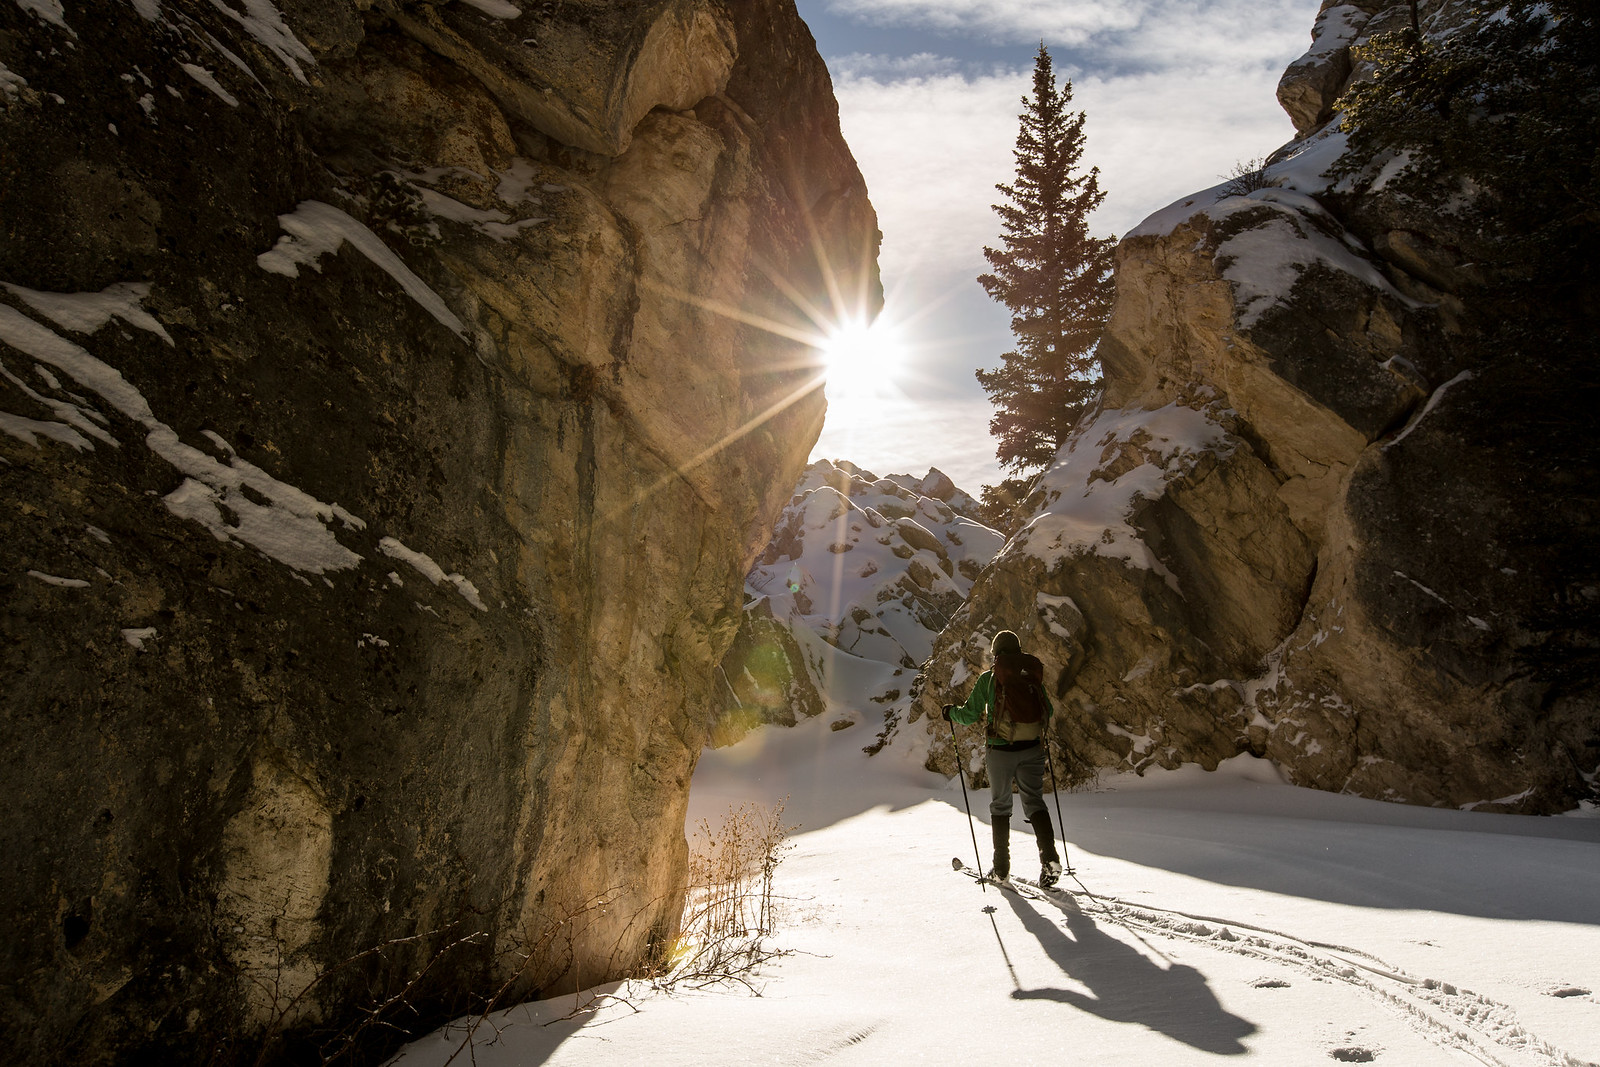 Man cross country skiing in snowy mountain